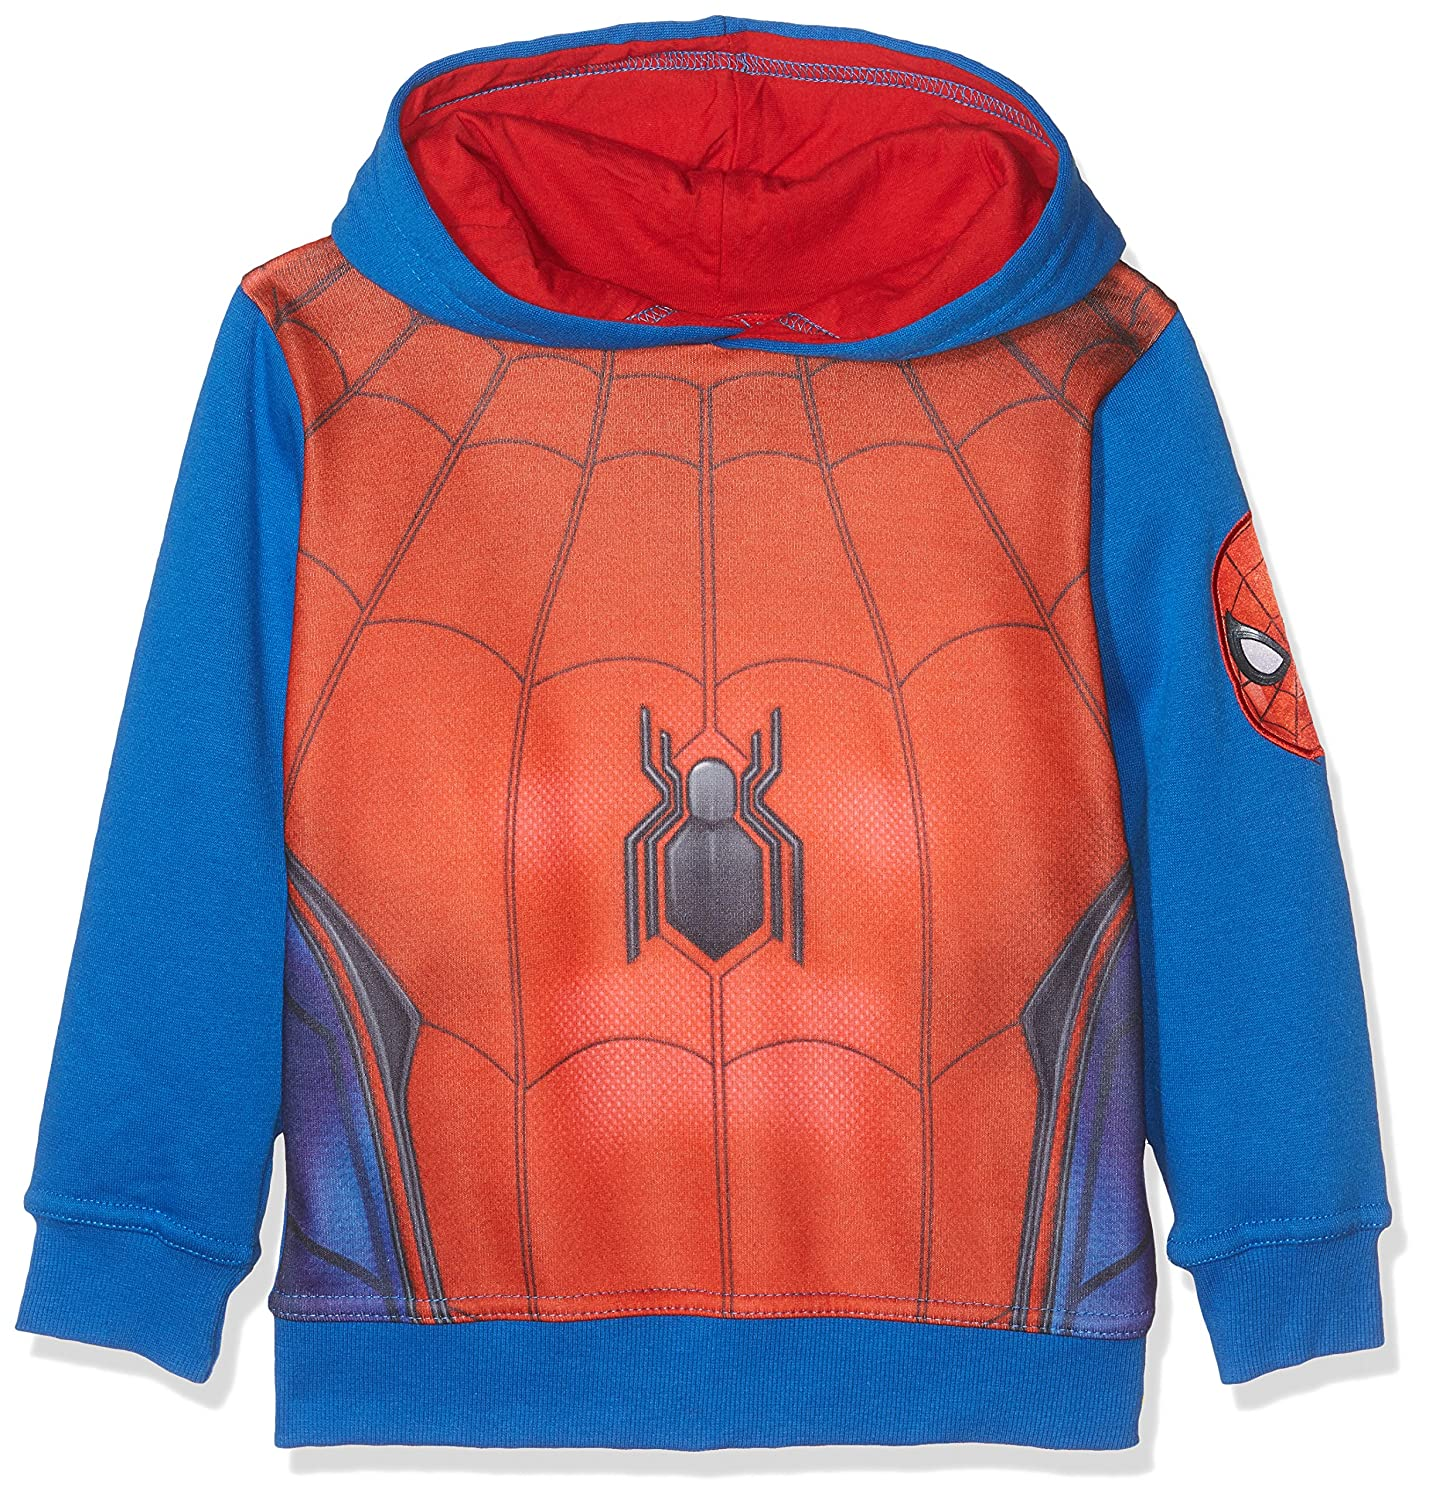 FABTASTICS Marvel Spiderman Sweatshirt mit Kapuze 161176